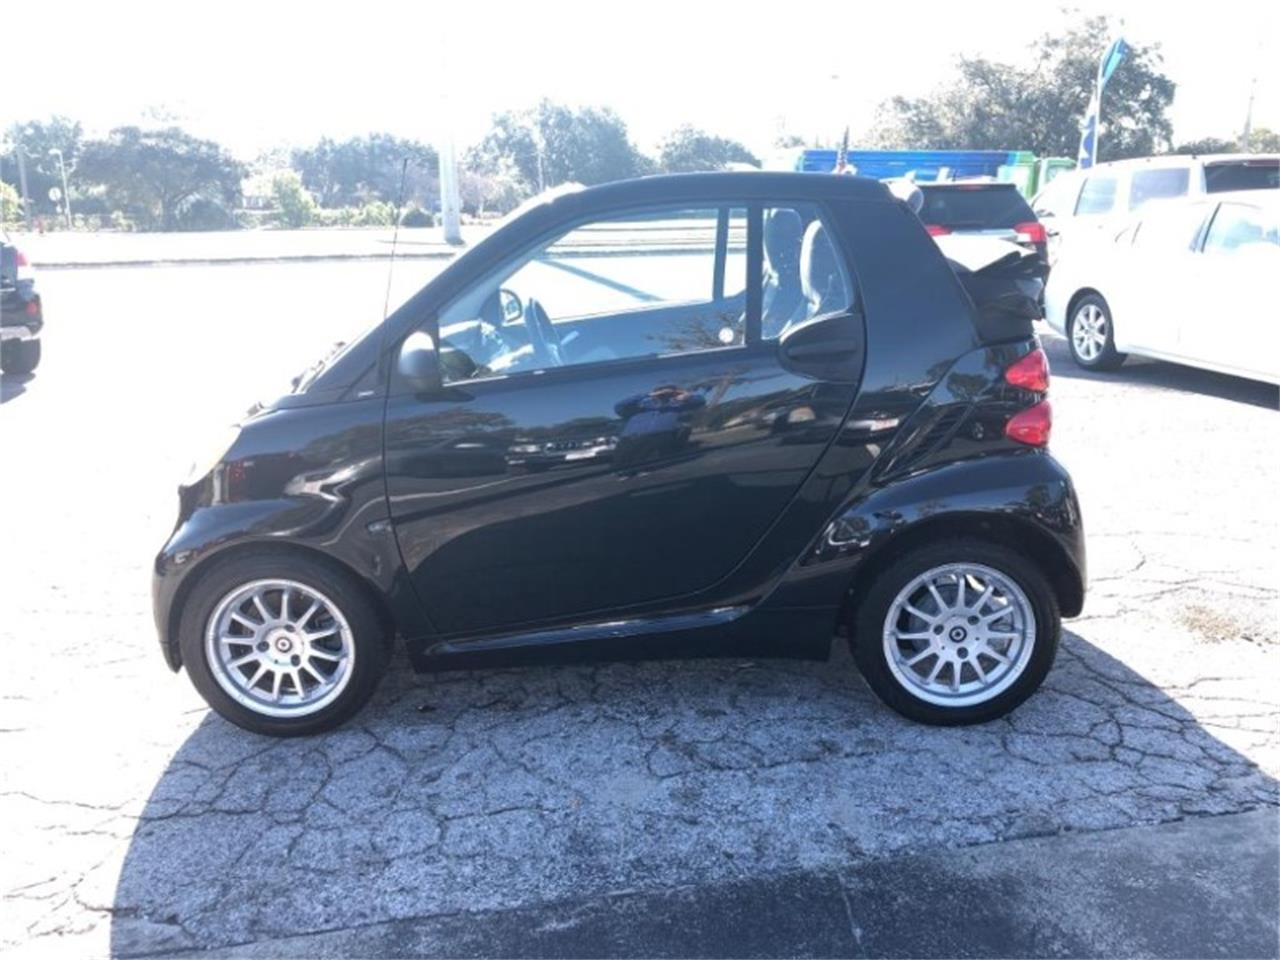 2012 Smart Fortwo for sale in Tavares, FL – photo 5